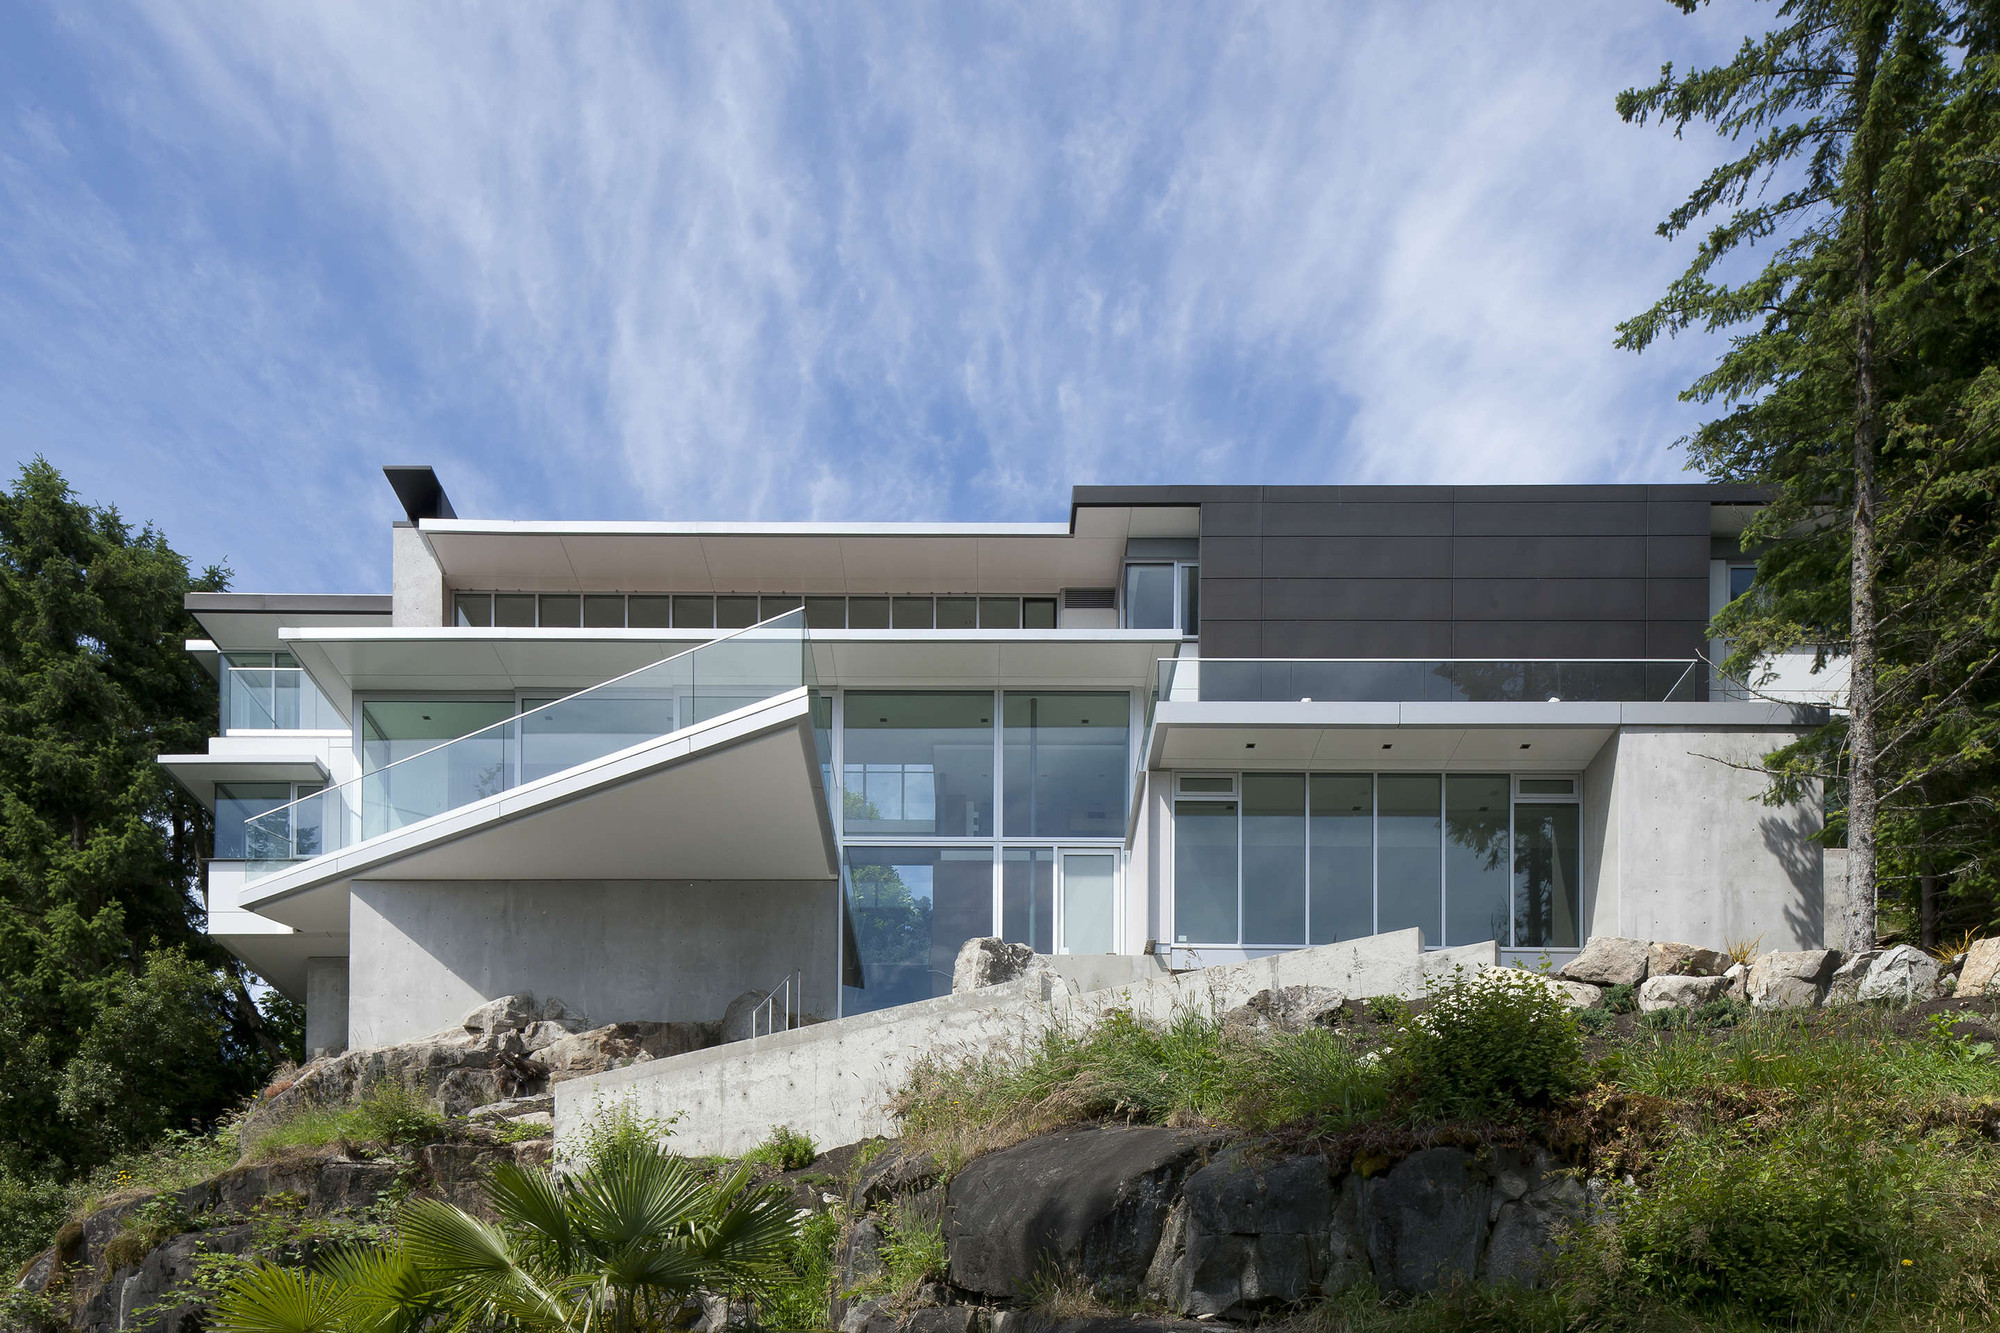 House 4249 / DGBK Architects, © Wade Comer